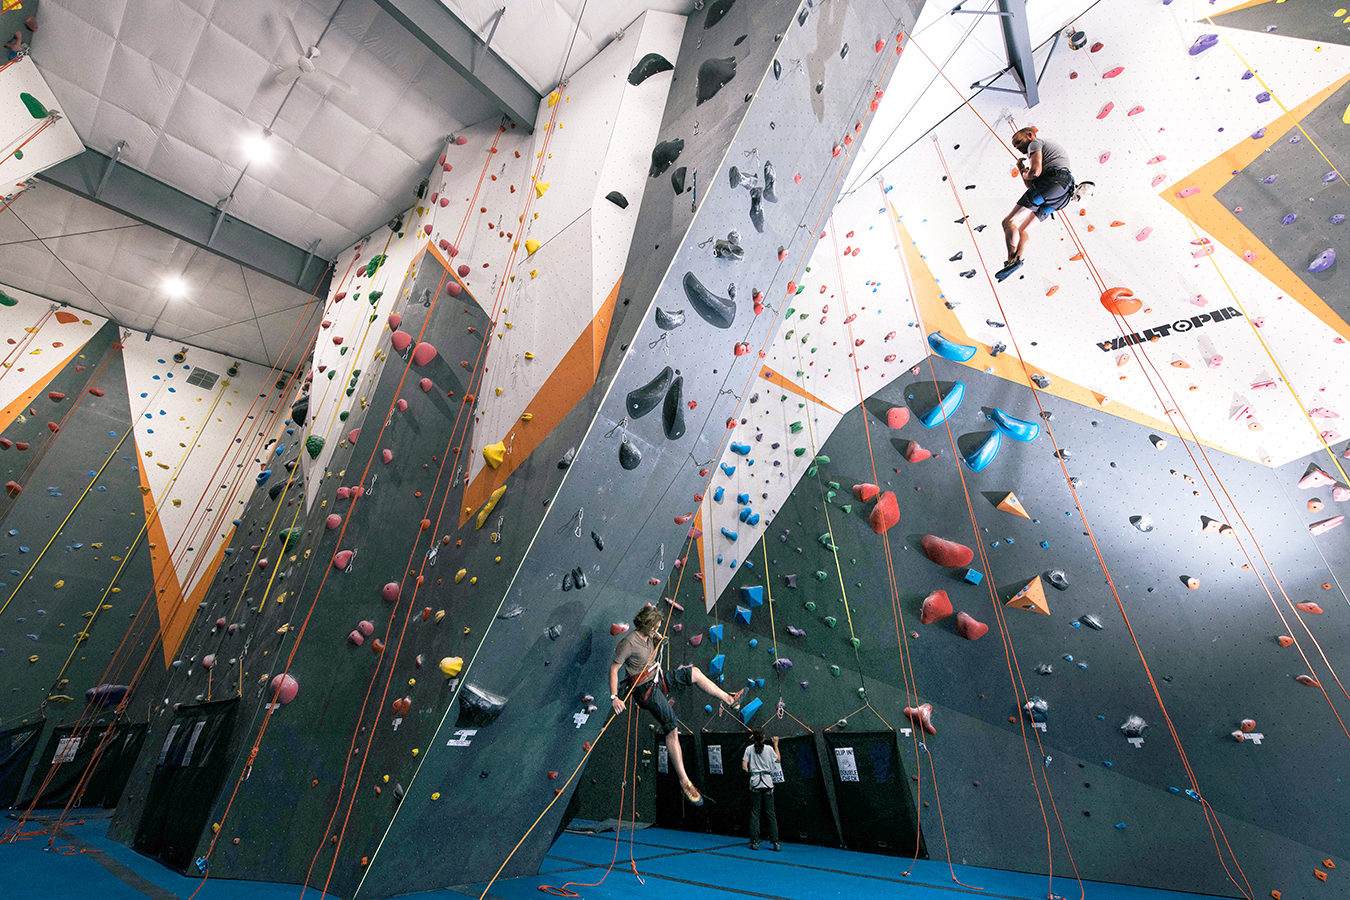 Hoosier Heights offers a variety of climbing experiences and welcomes climbers of all ages and expertise. The new gym has bouldering, a classic belay as well as an auto-belay system, and a ropes room. In addition, the new location in McDoel Gardens has a community room, yoga classes, and exercise equipment.